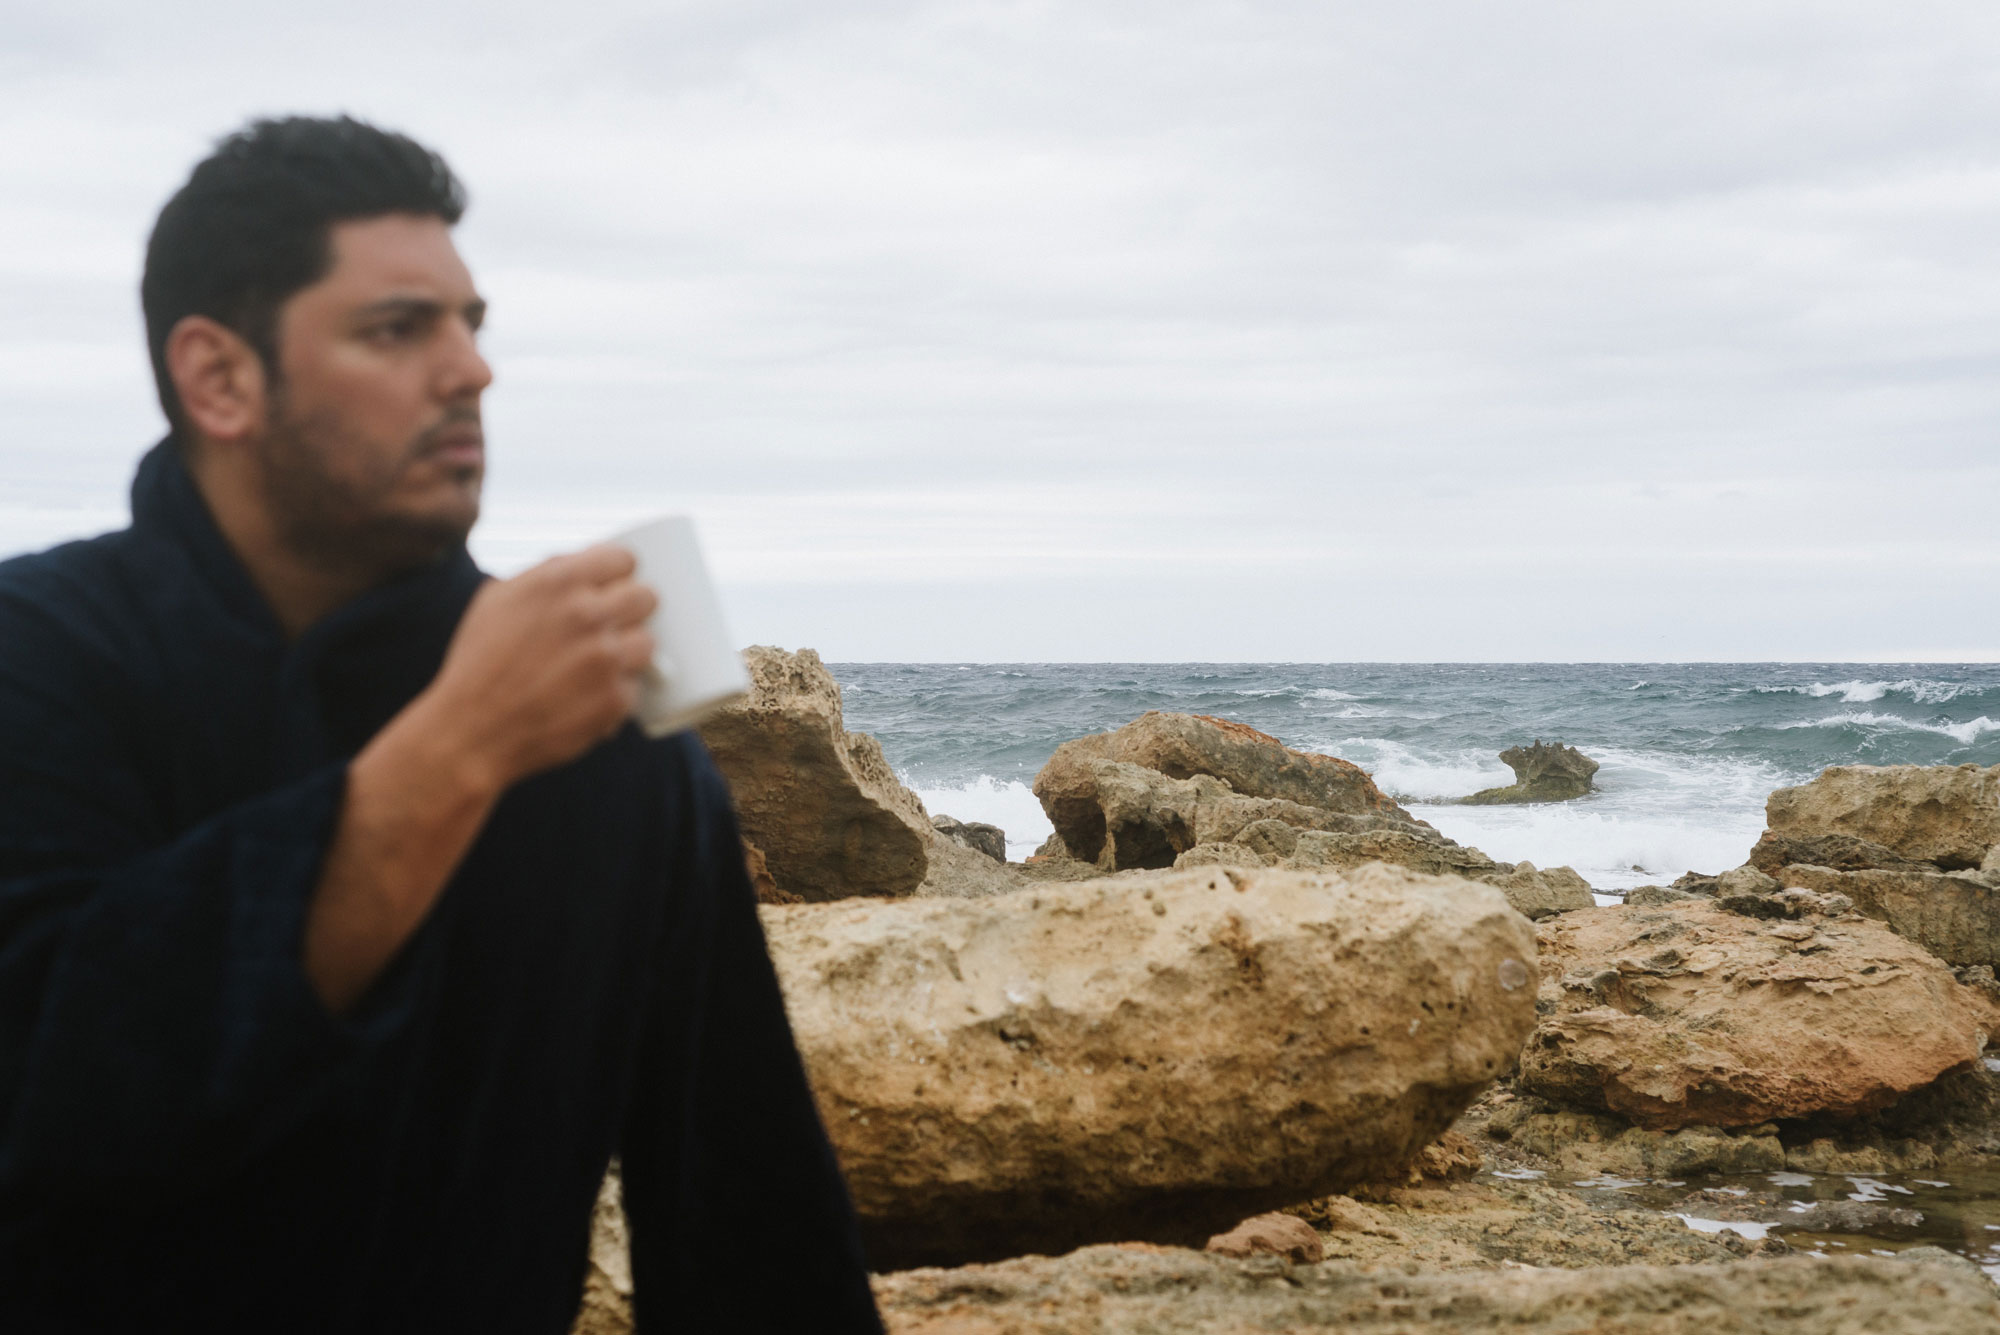 Wedding Photographer In Ibiza Wears Velour Dressing Gown, Takes Deep Breath & Sips Coffee On The Beach